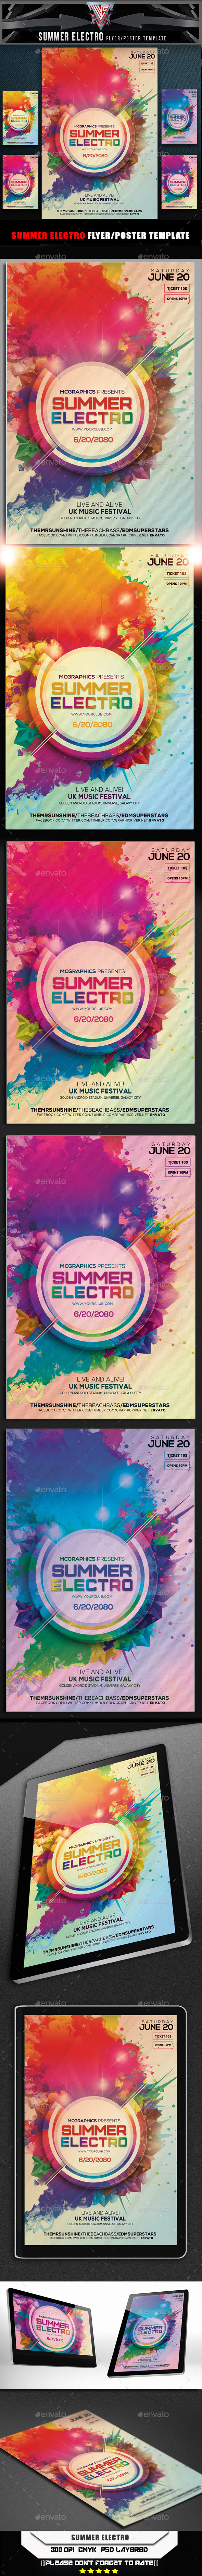 GraphicRiver Summer Electro Flyer Template 10556807